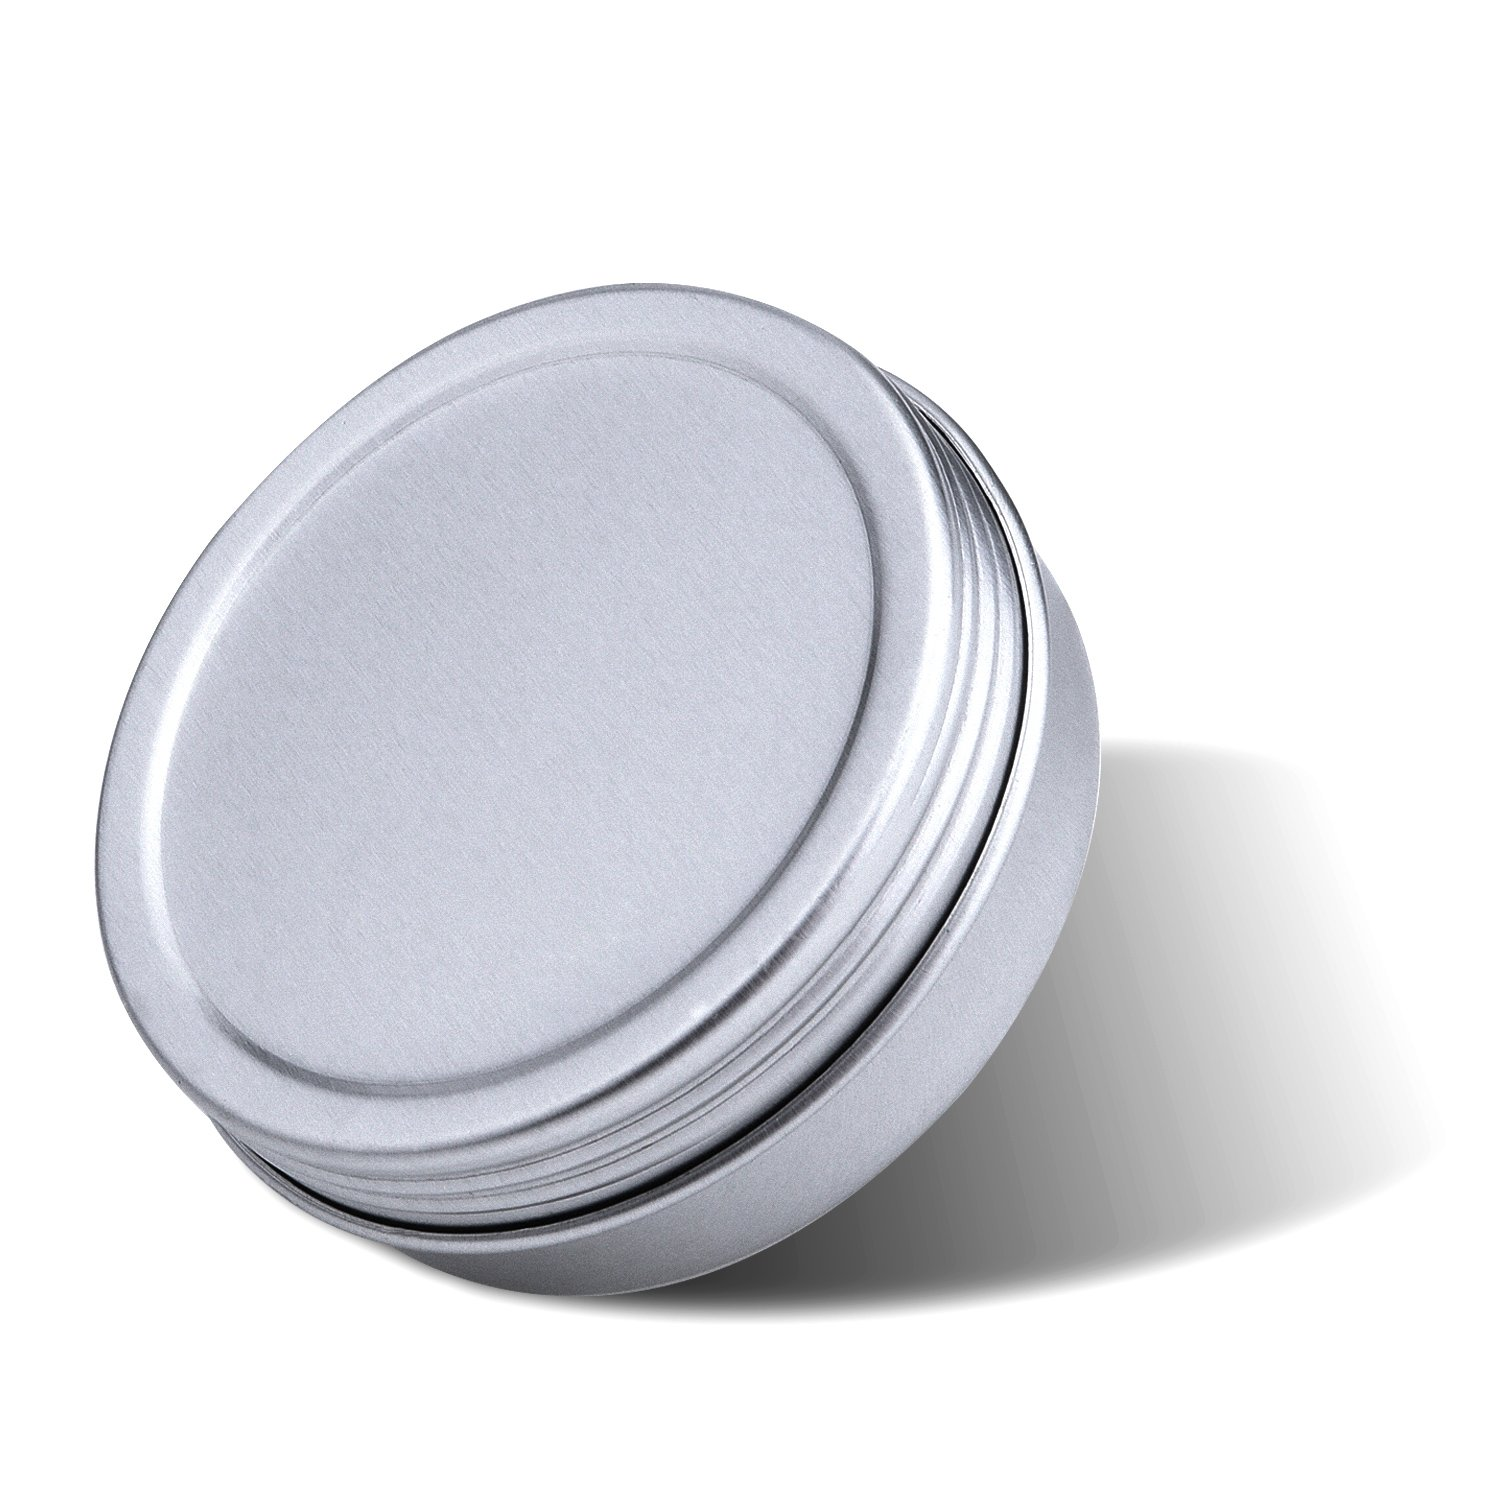 1 oz Outus Screw Top Round Aluminum Cans Screw Lid Containers 24 Pack